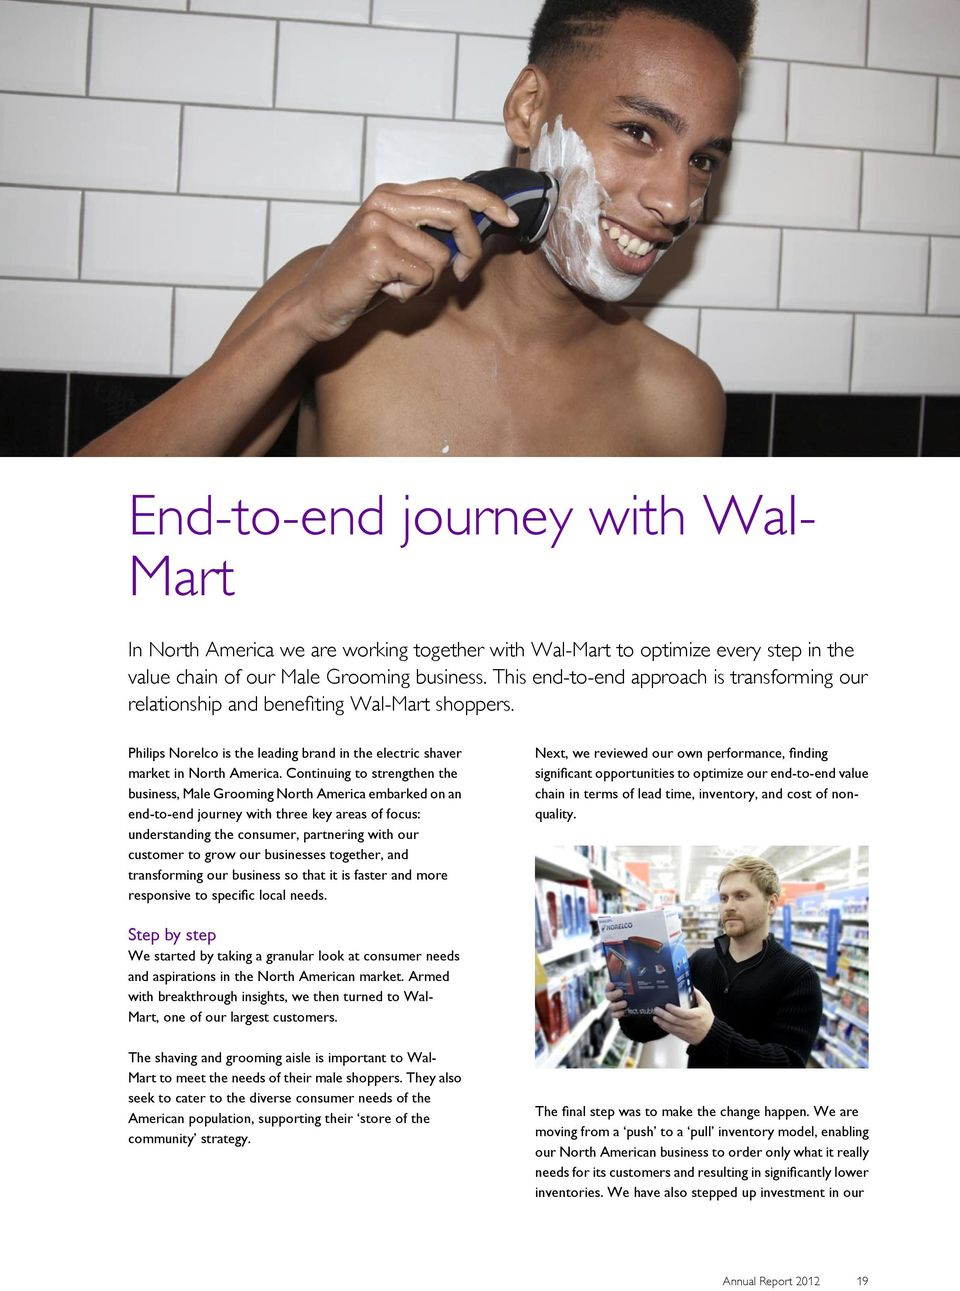 Continuing to strengthen the business, Male Grooming North America embarked on an end-to-end journey with three key areas of focus: understanding the consumer, partnering with our customer to grow